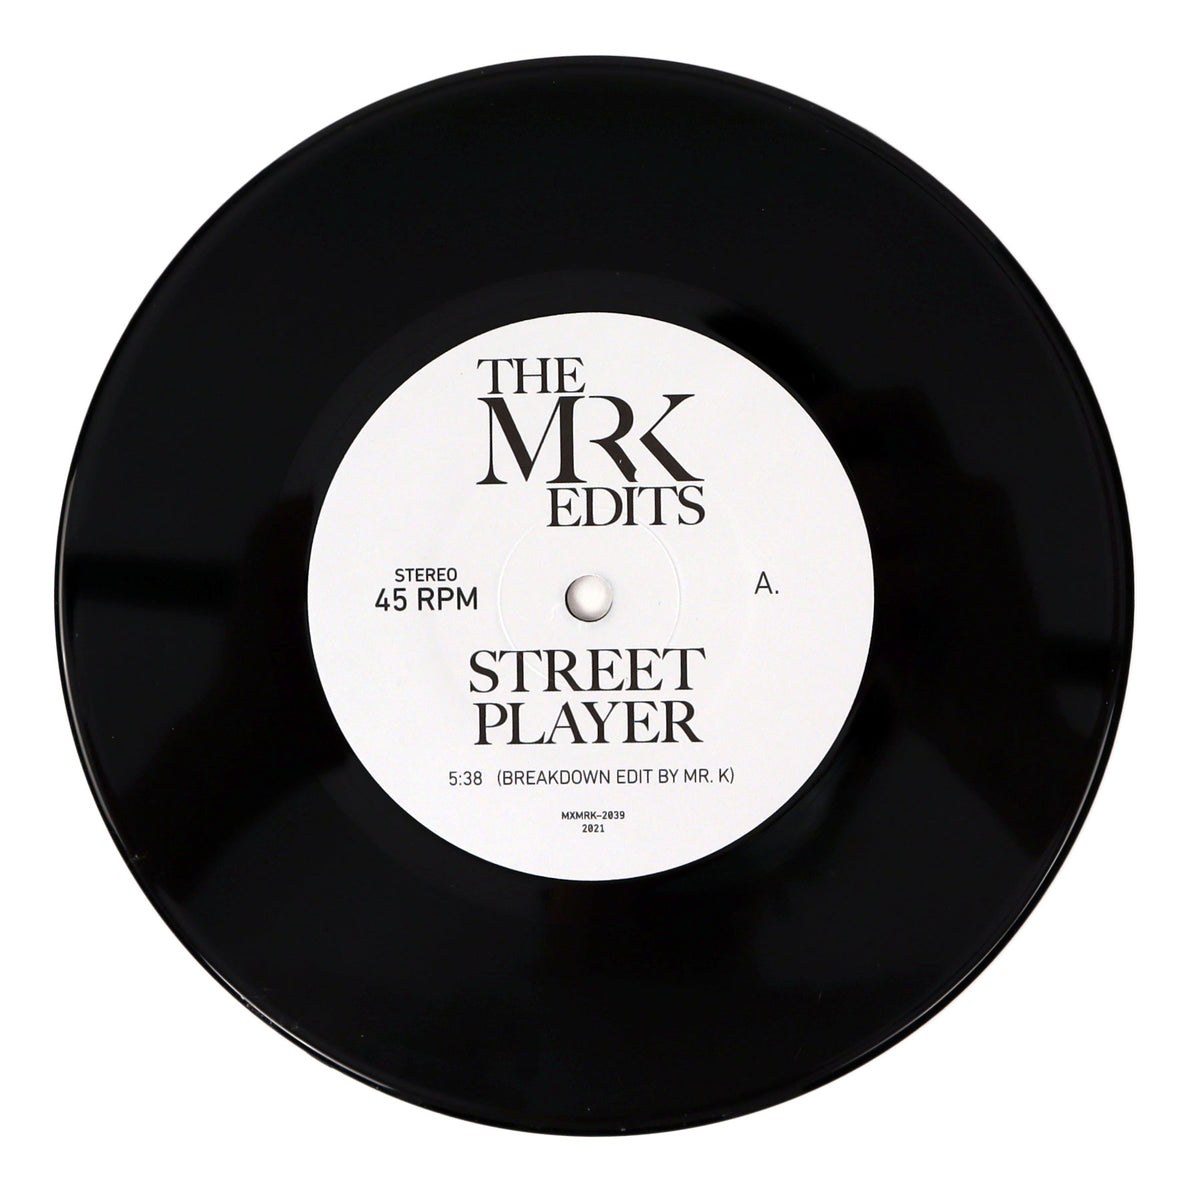 Rufus / James Brown: Street Player / Get Up Get Into It Get Involved (Mr. K Edits)